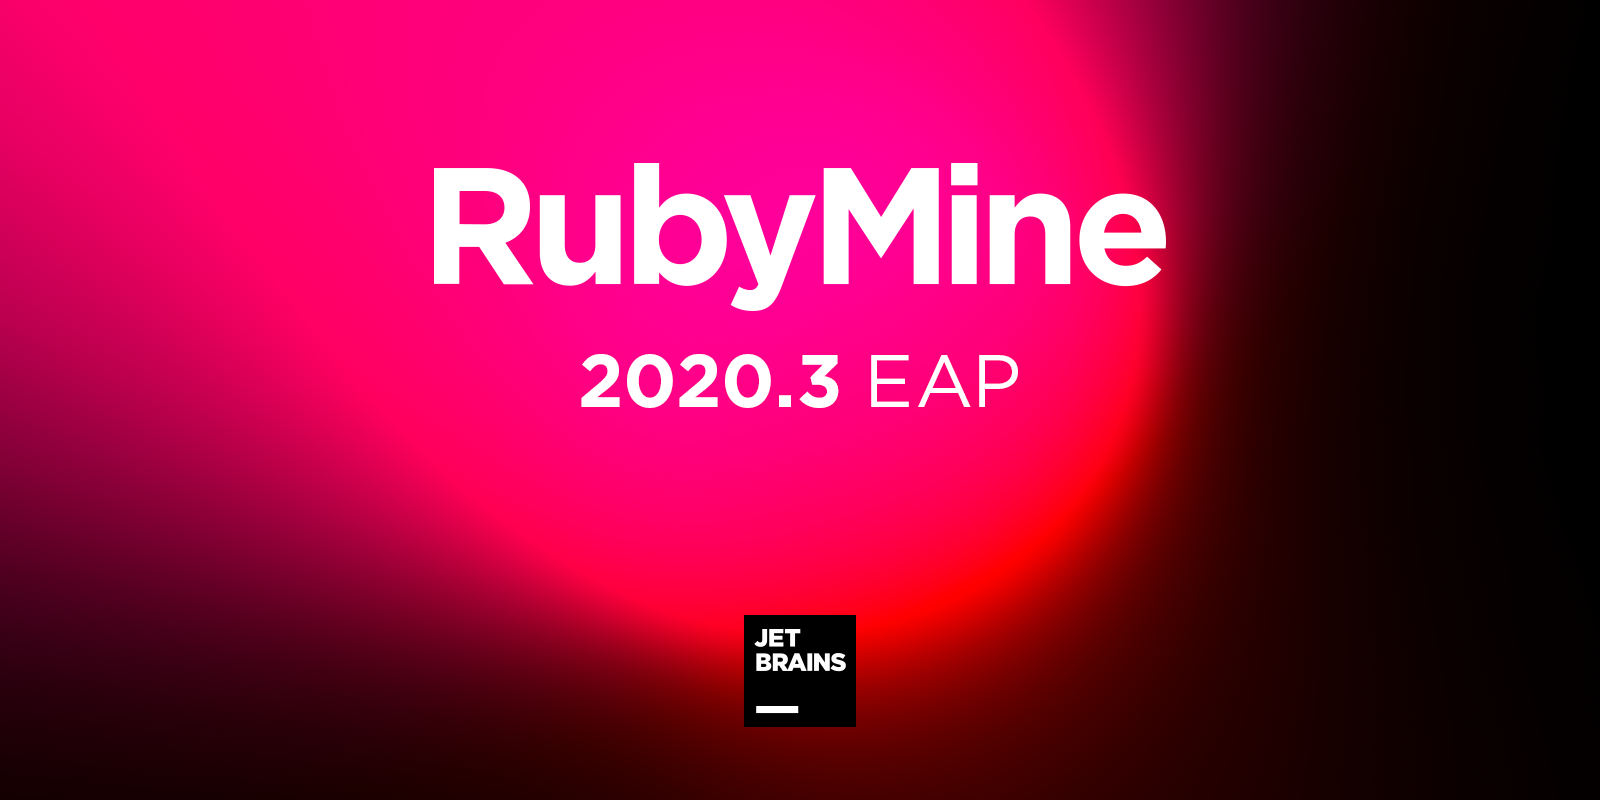 RubyMine 2020.3 EAP Is Open